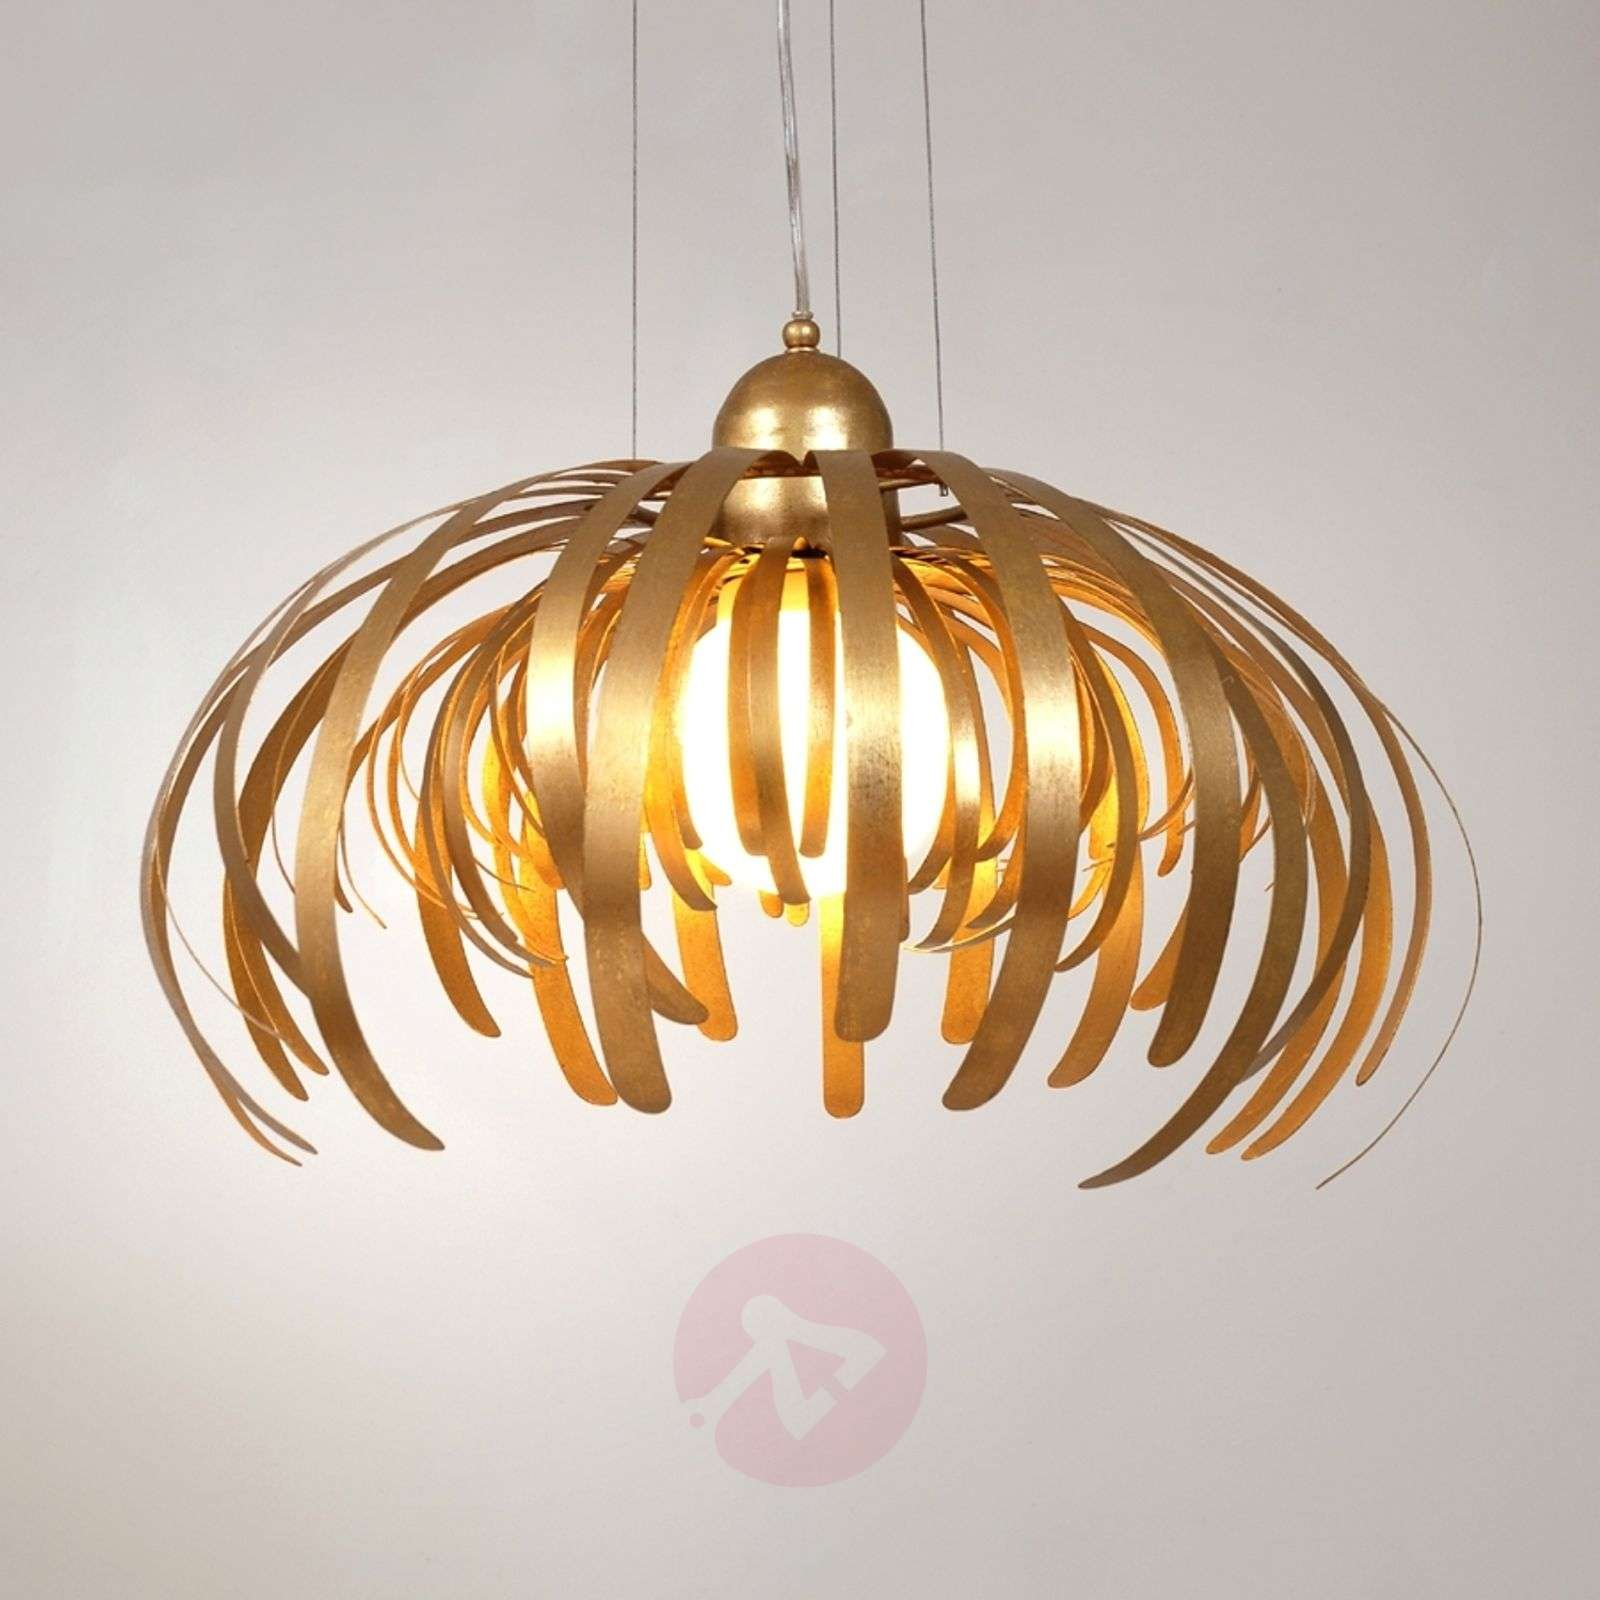 Moderne hanglamp Alessia-4512210-01